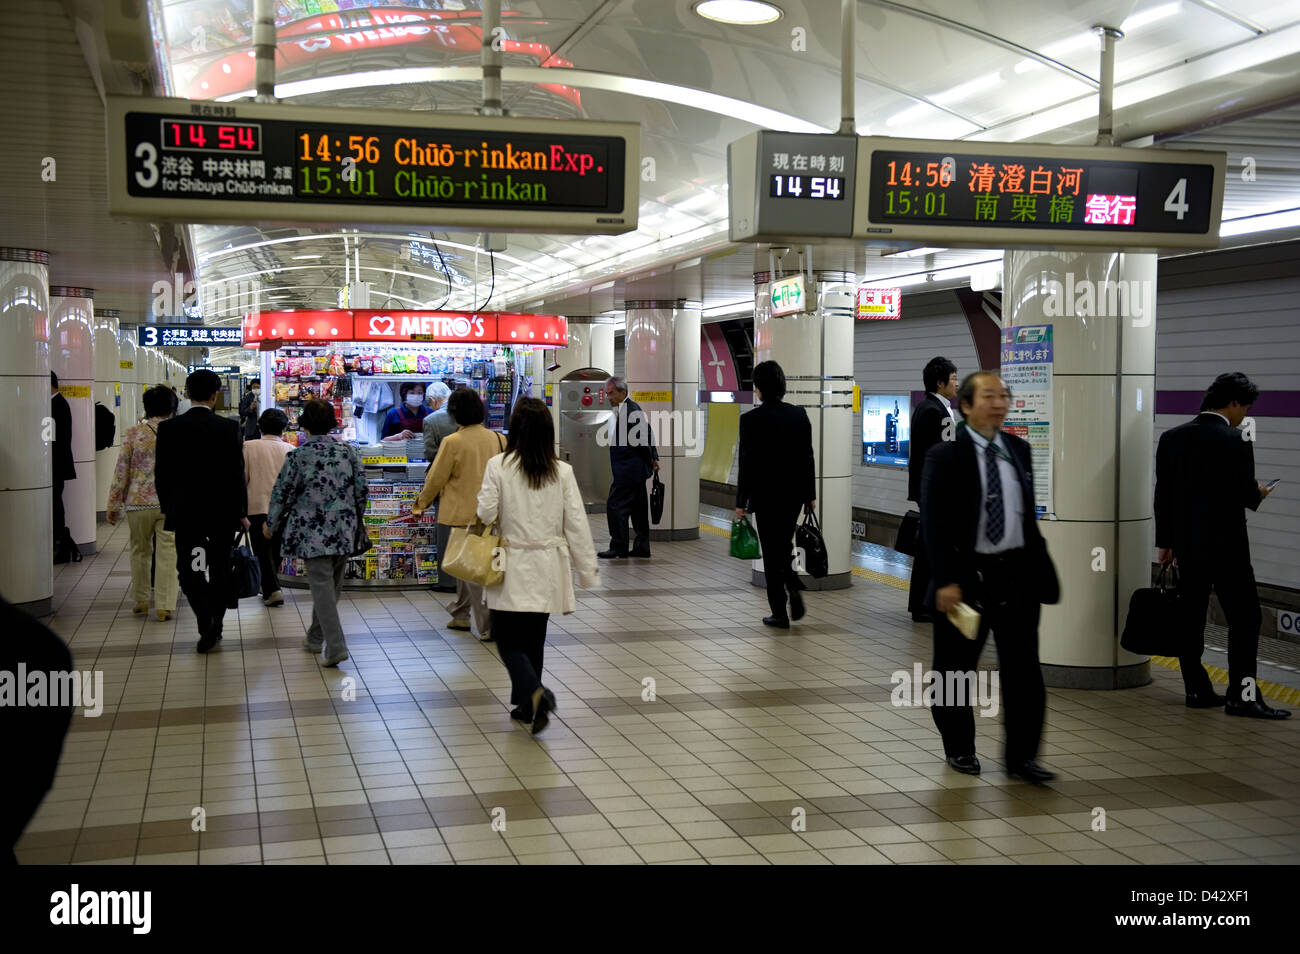 People walking around on a Tokyo Metro subway underground platform while waiting for the train to arrive. - Stock Image